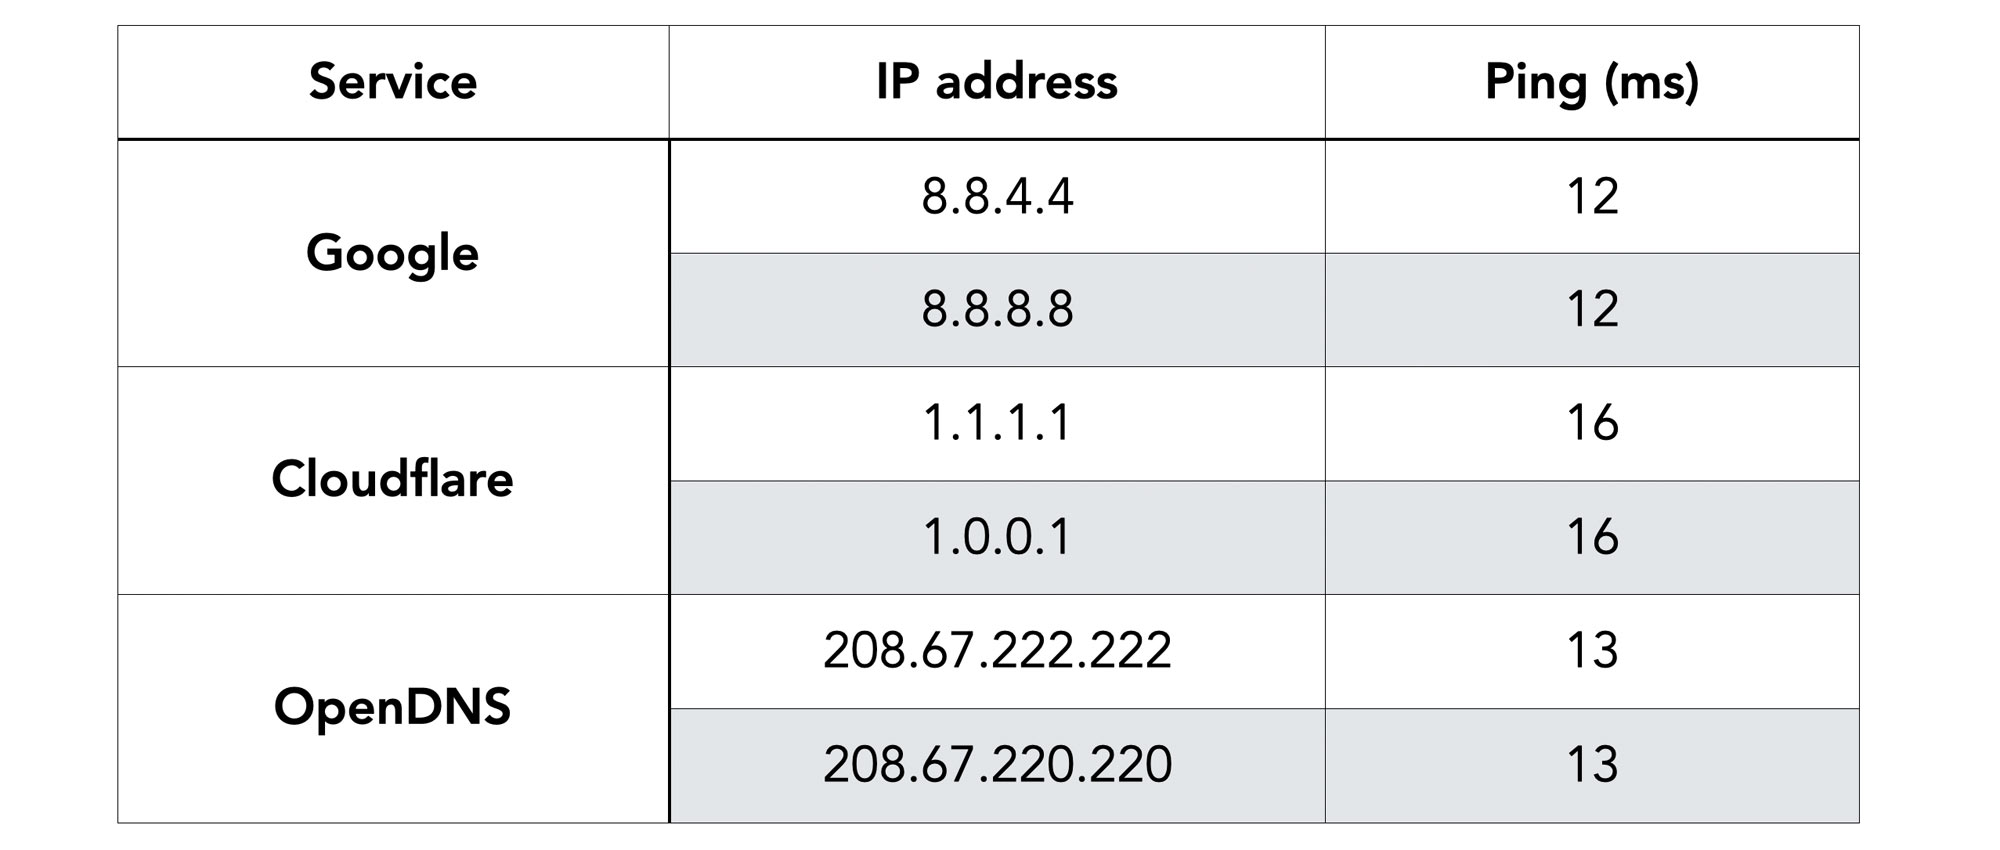 Comparison of pings for Public DNS servers